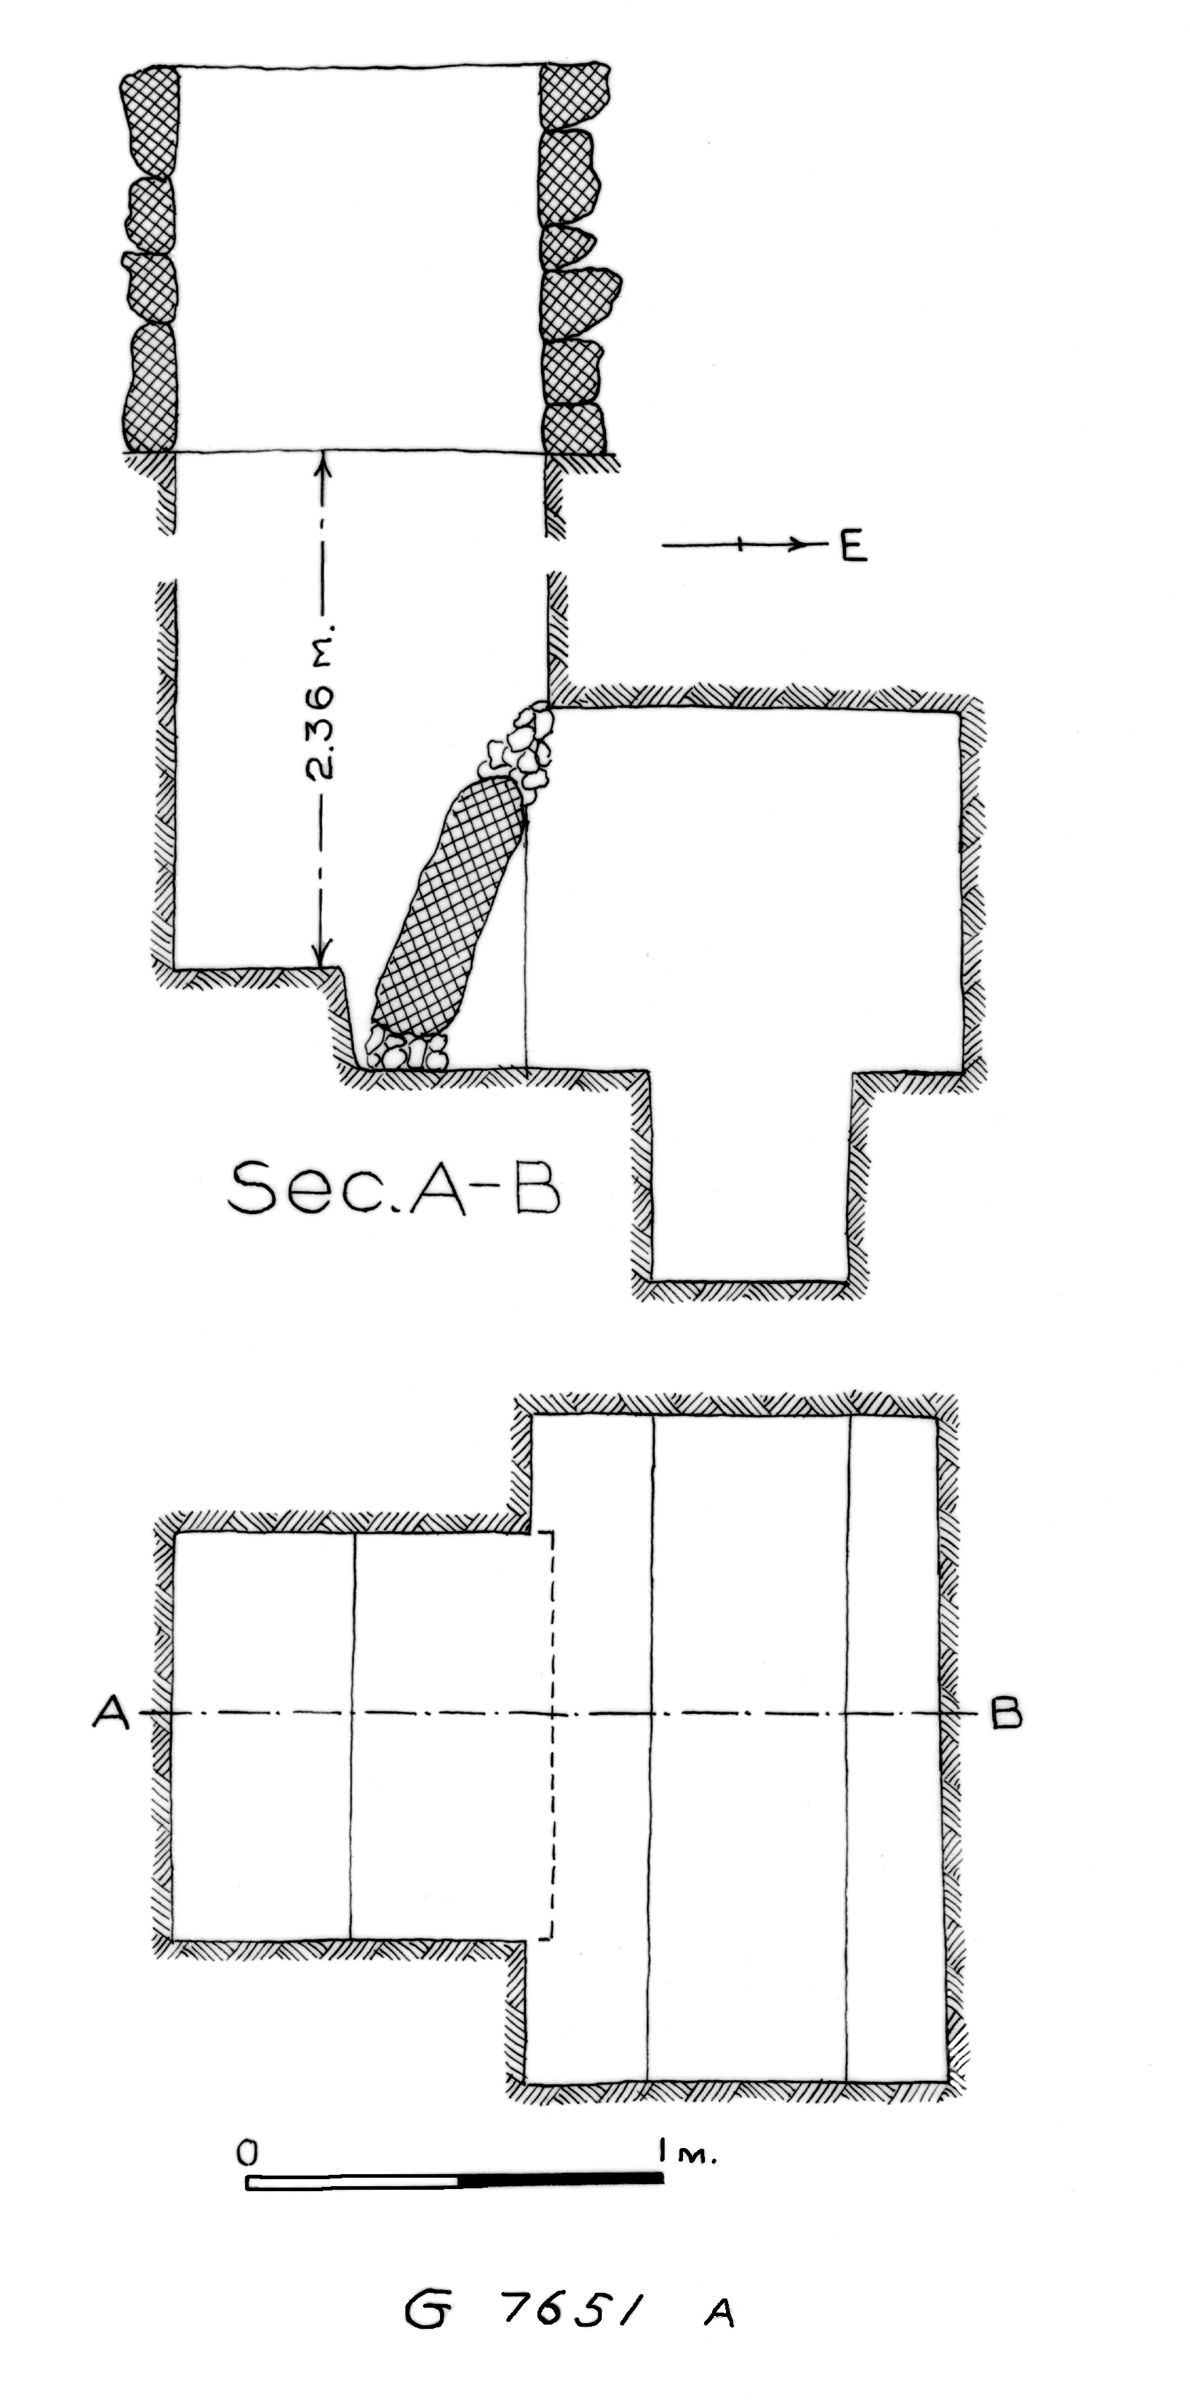 Maps and plans: G 7651, Shaft A